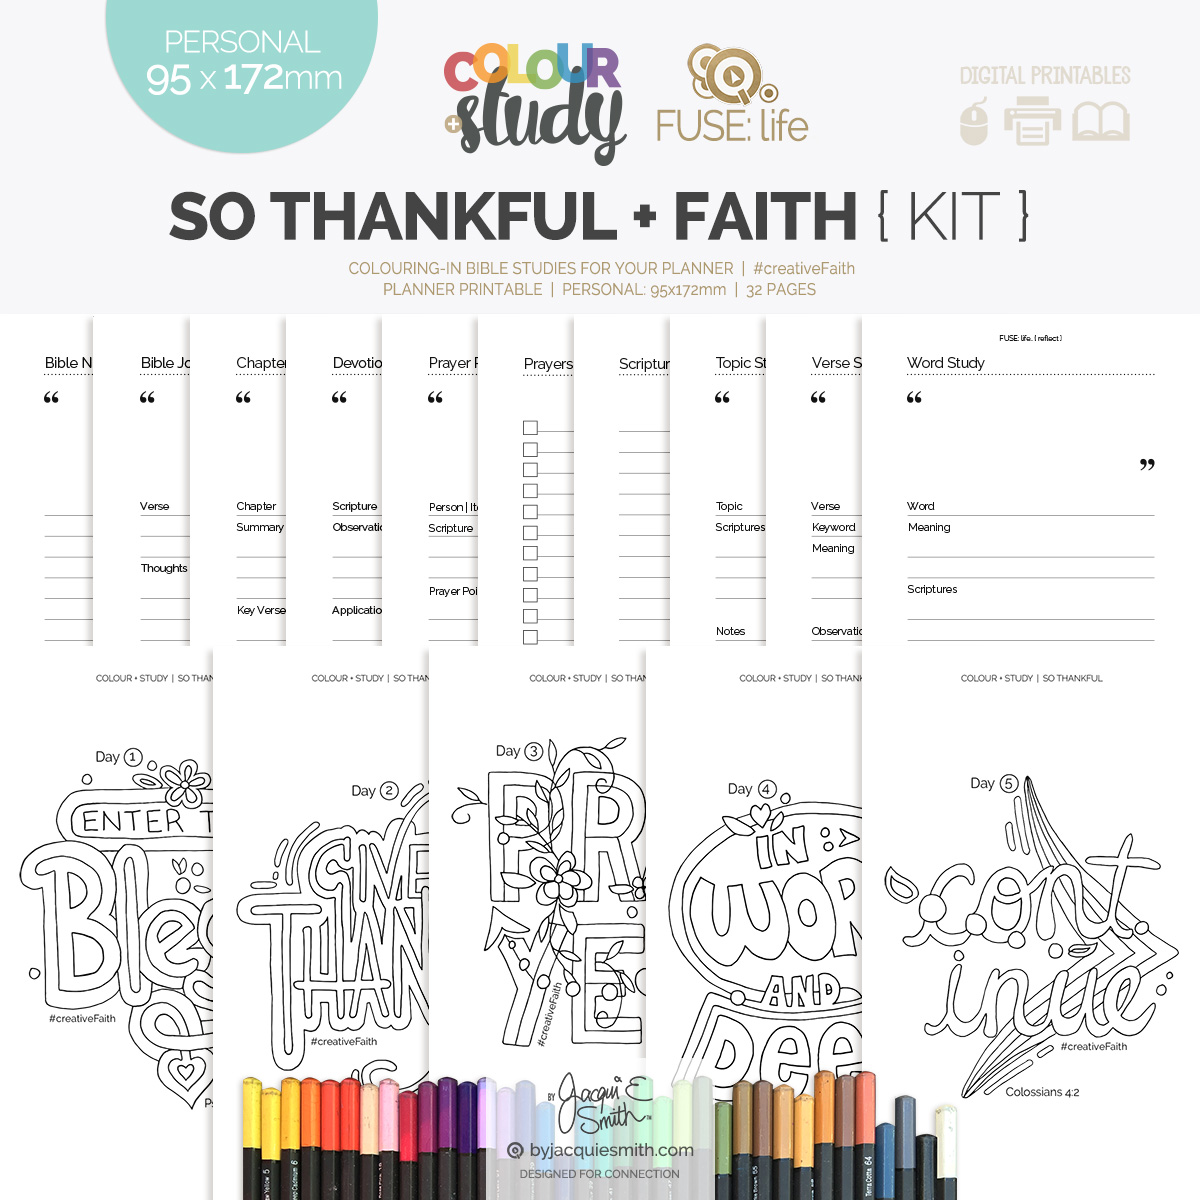 So Thankful Color + Study devotional + FUSE:life Faith : personal planner printables at byjacquiesmith.com